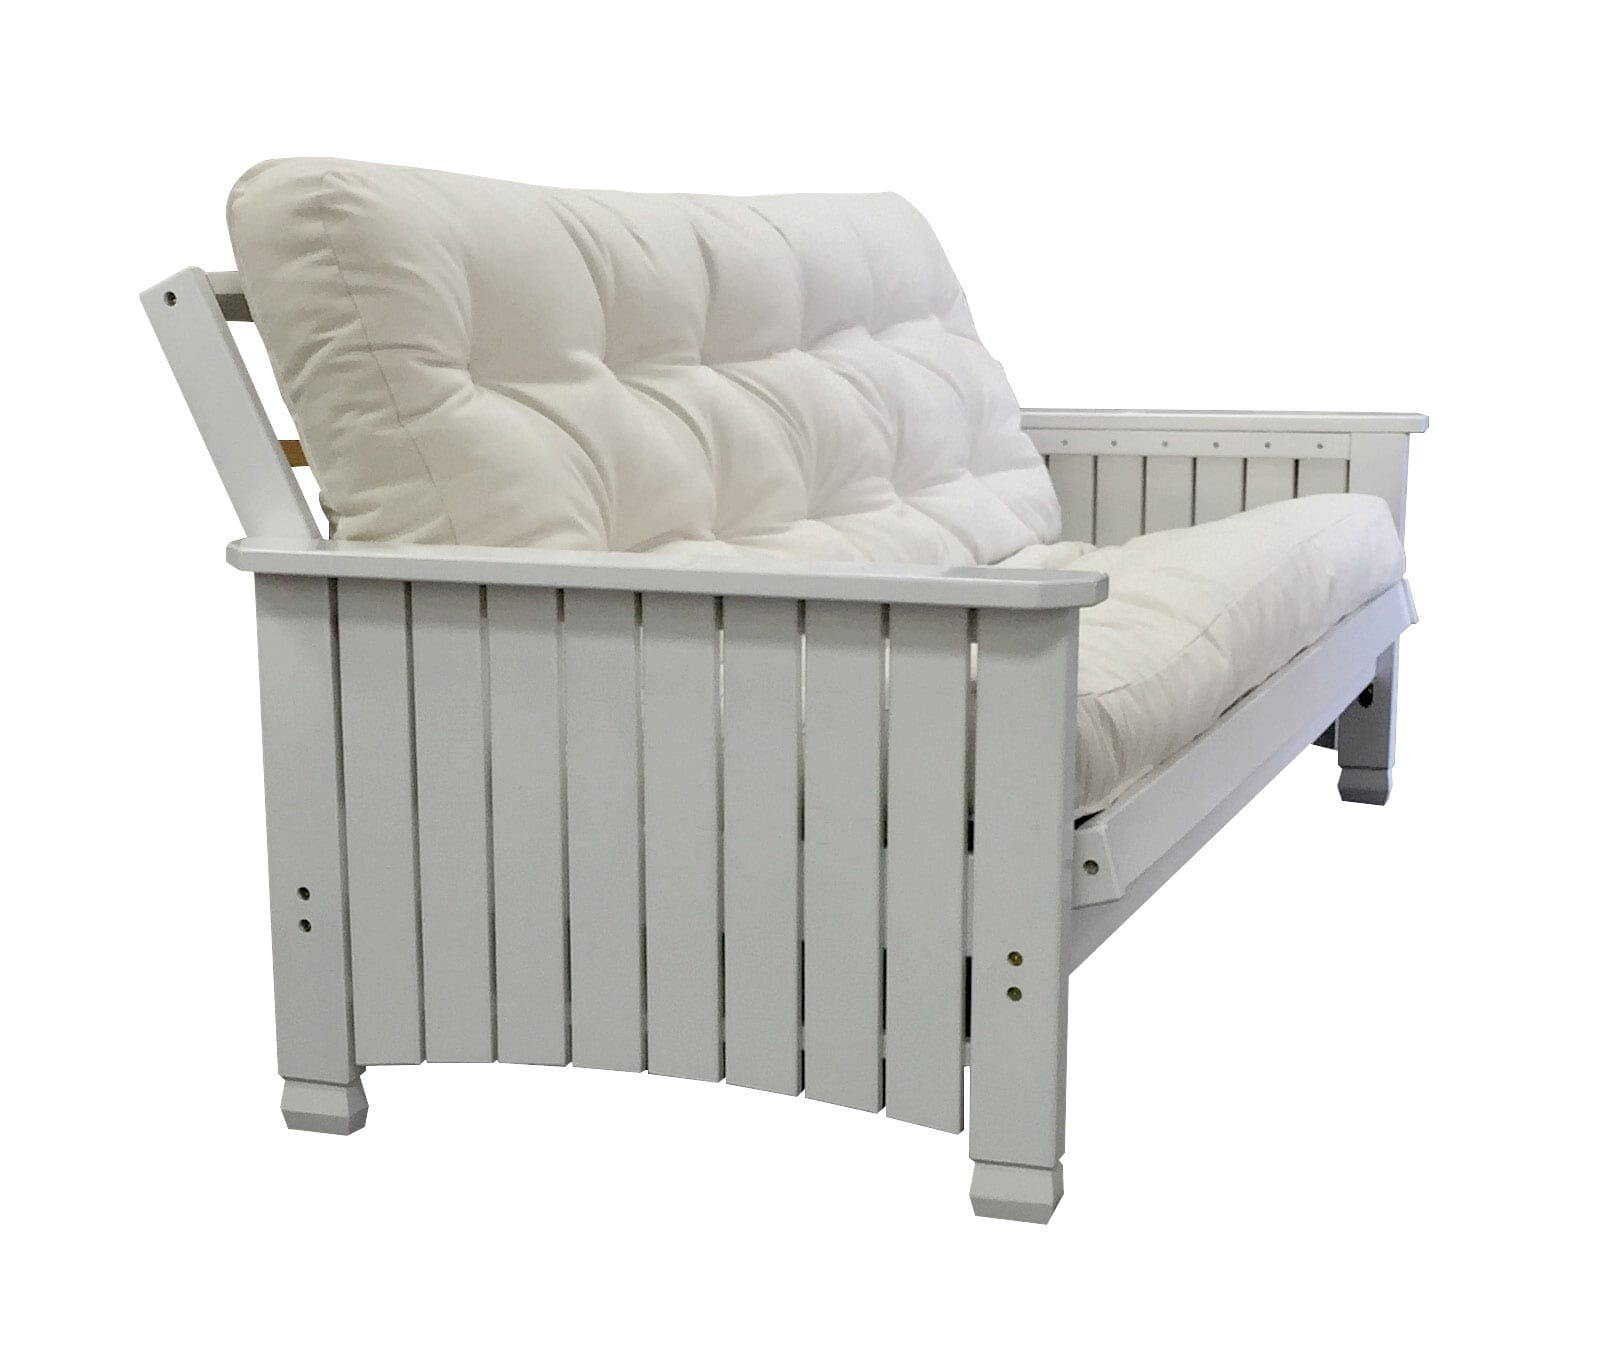 charleston white full futon frame by gold bond